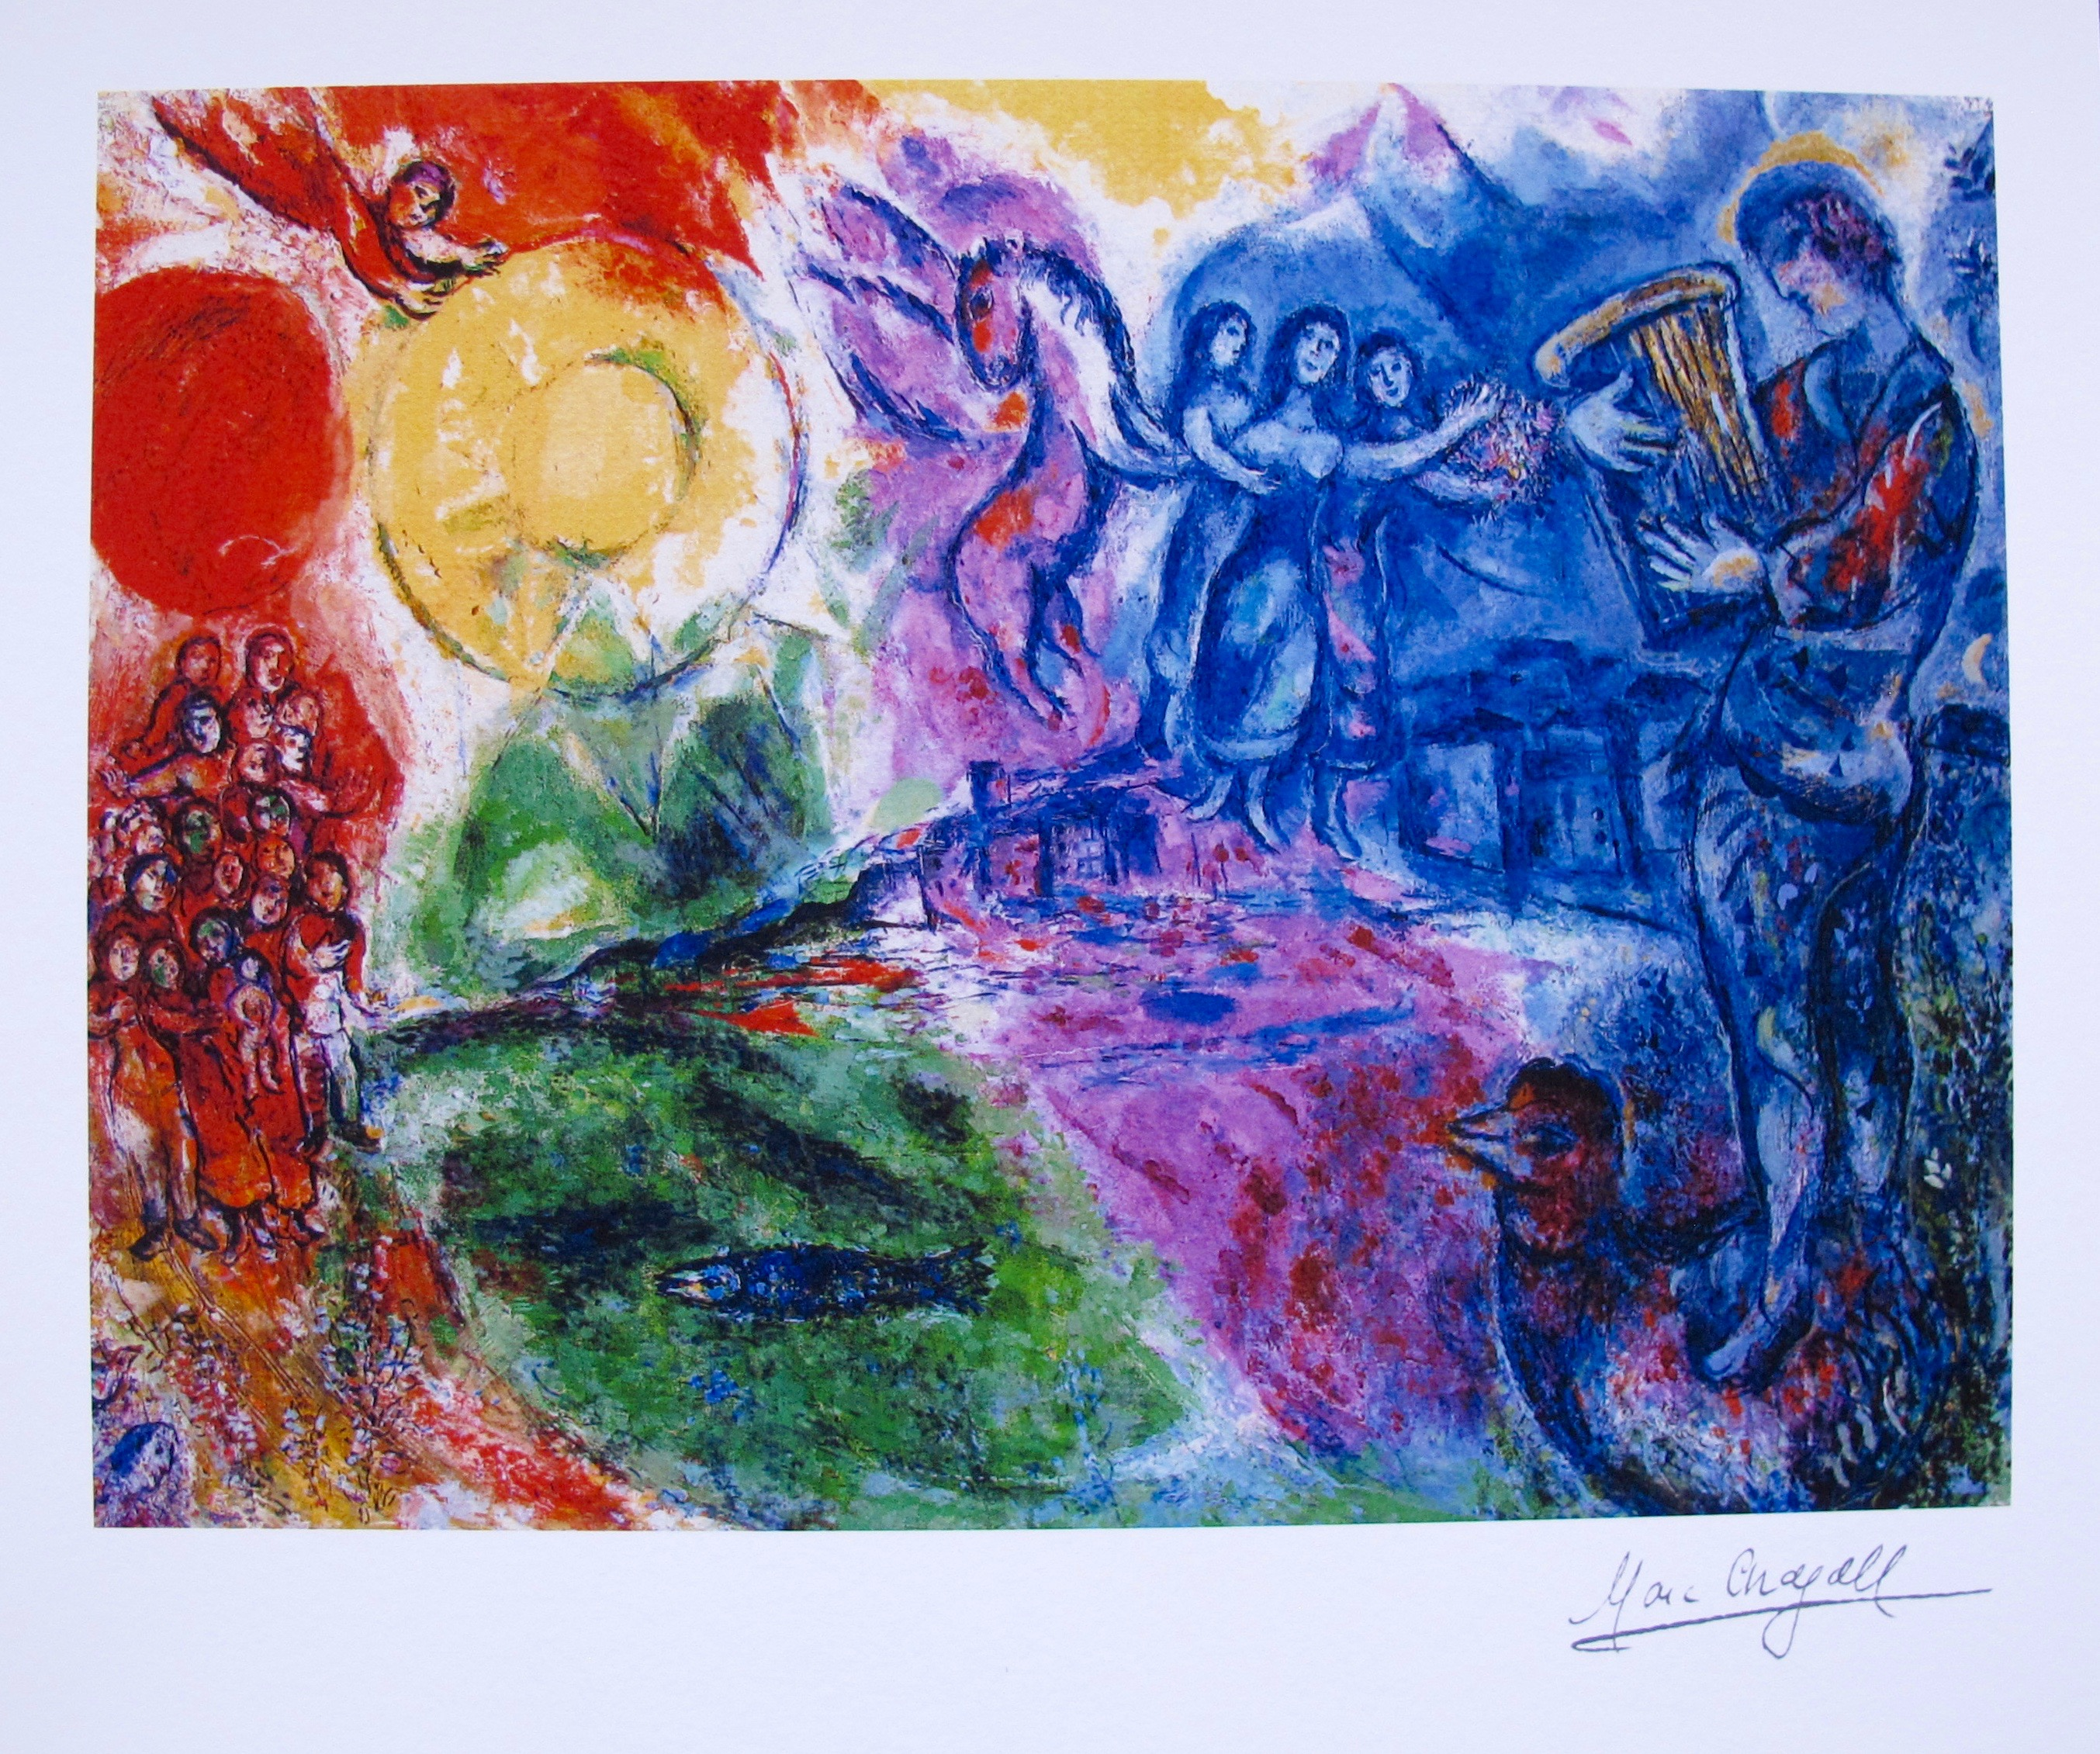 Marc Chagall ORPHEUS Limited Edition Facsimile Signed Small Giclee